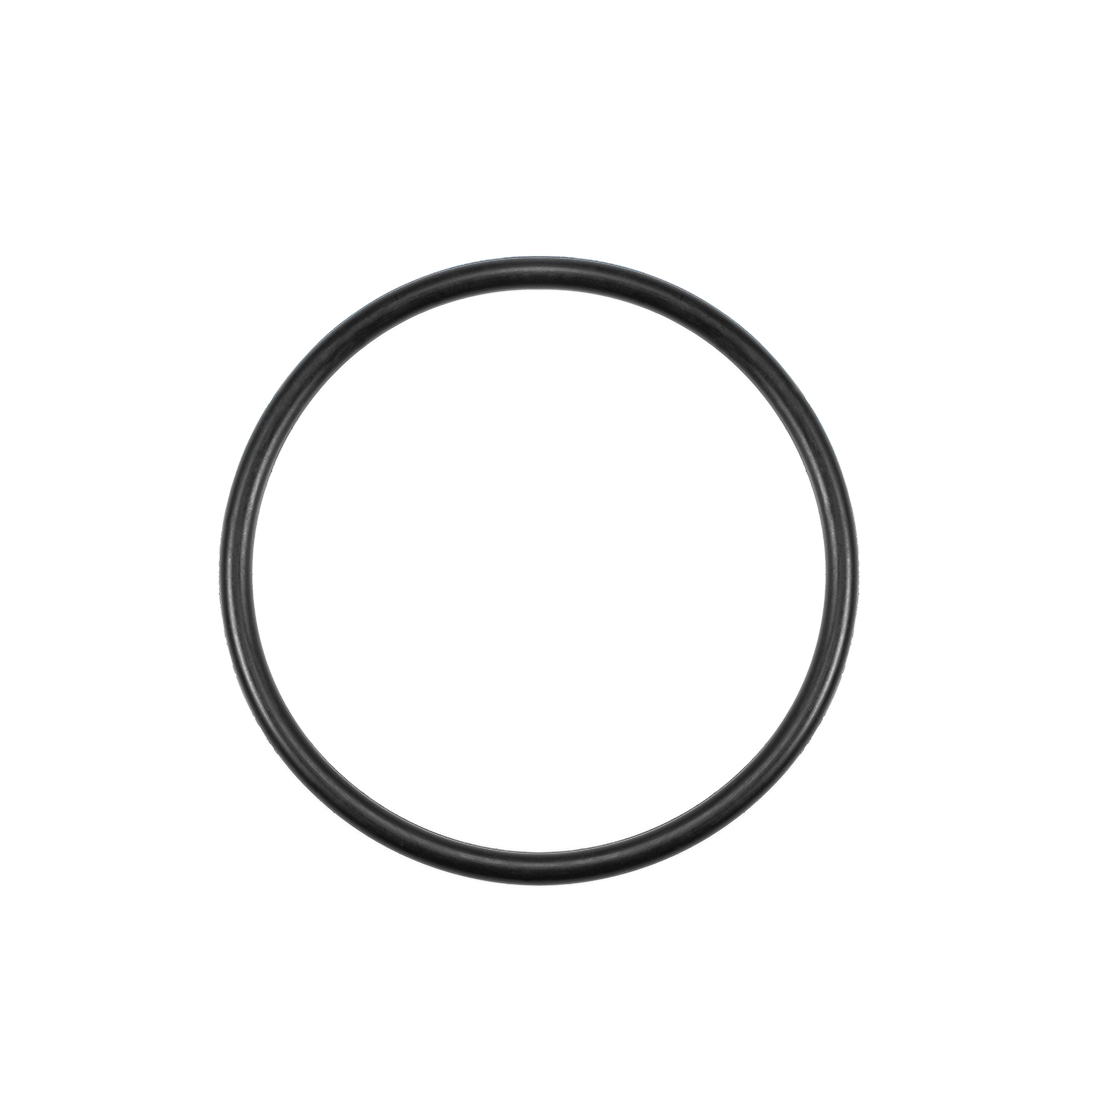 O-Rings Nitrile Rubber 24mm x 32mm x 4mm Round Seal Gasket 10Pcs